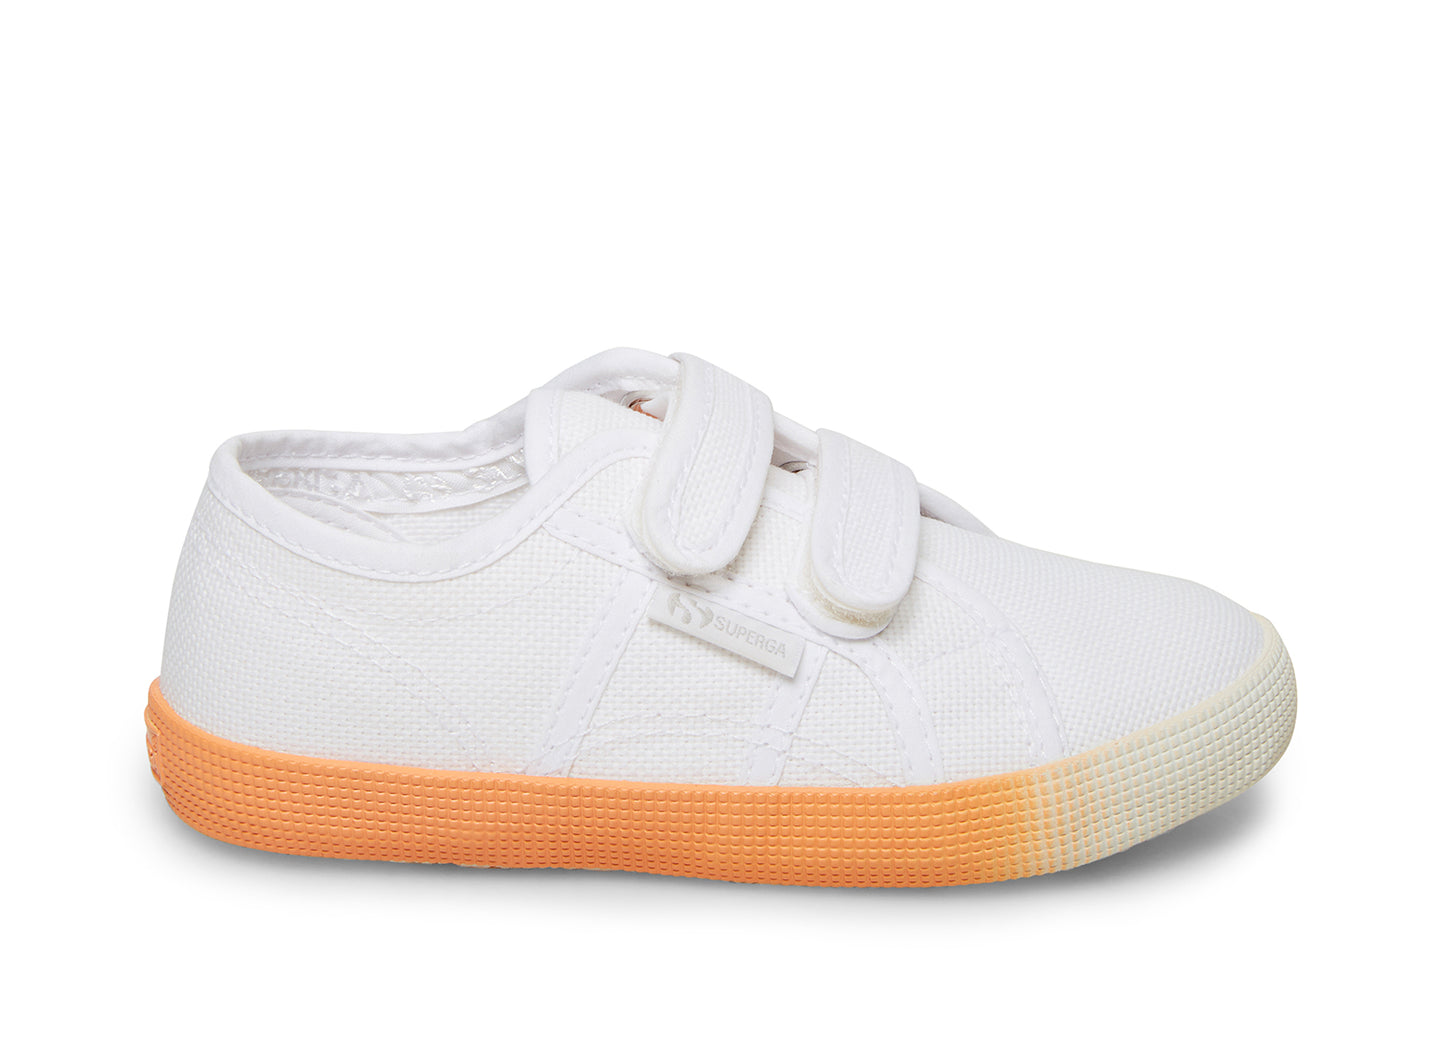 2750 COTBUMPERSTRAPGRADIENTJ WHITE MELON - Kids